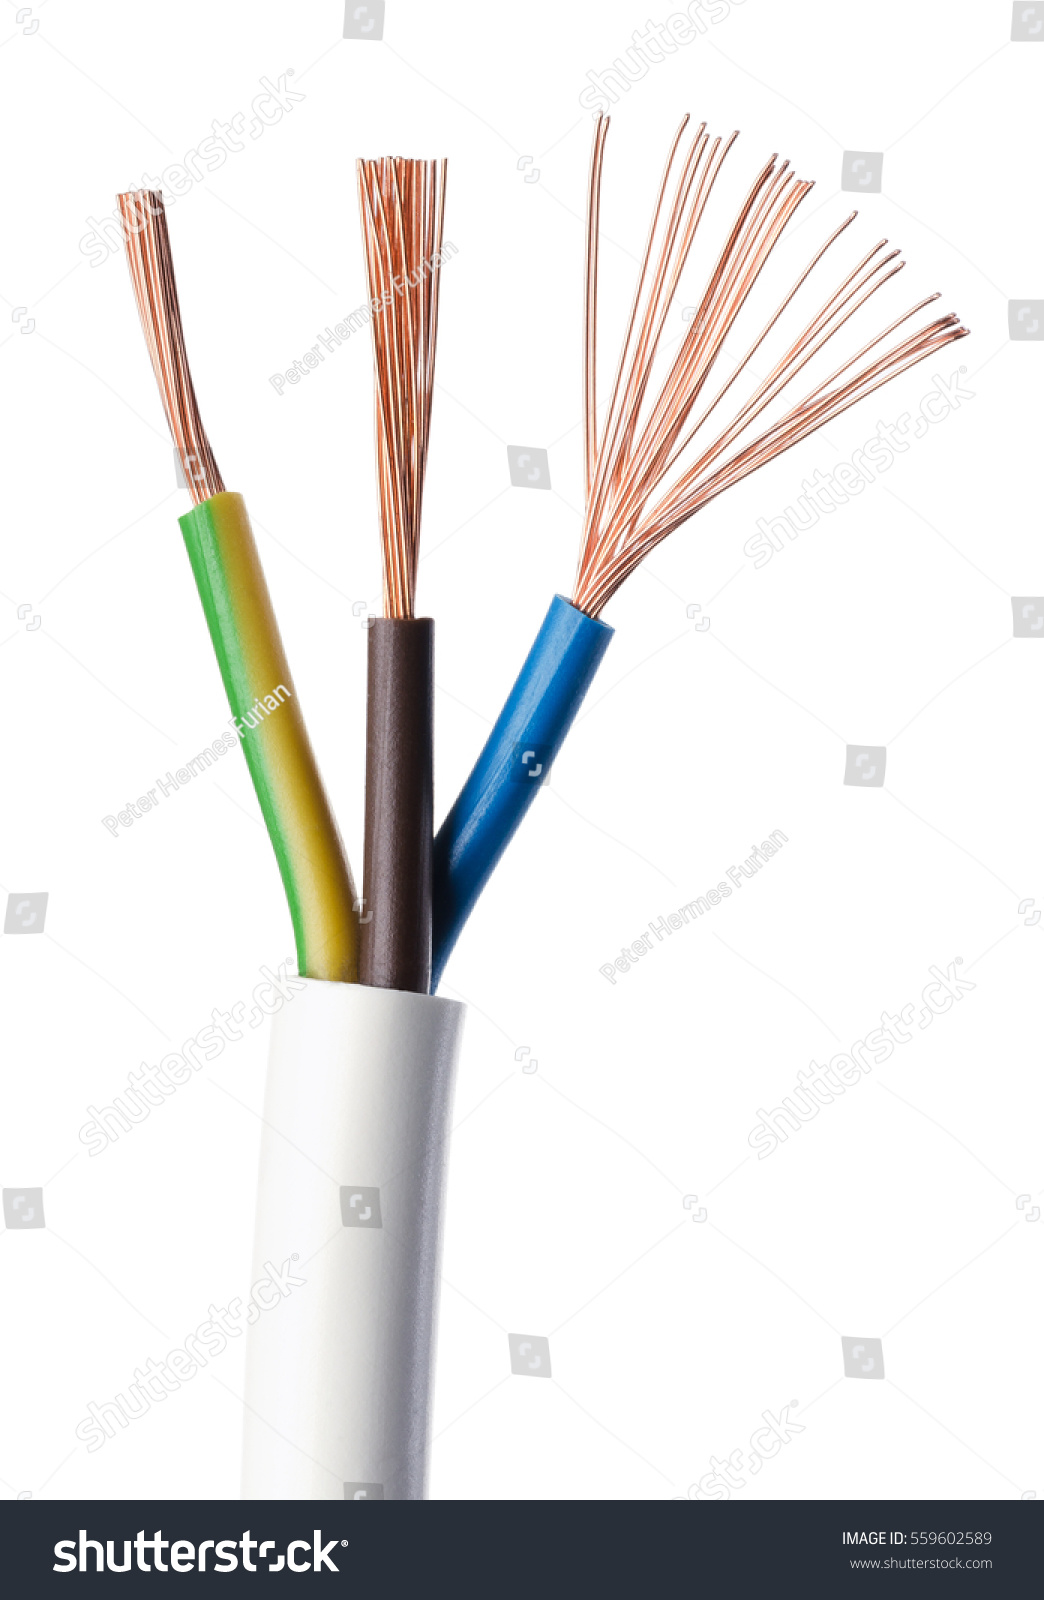 Image Result For Electrical Wires Brown And Blue